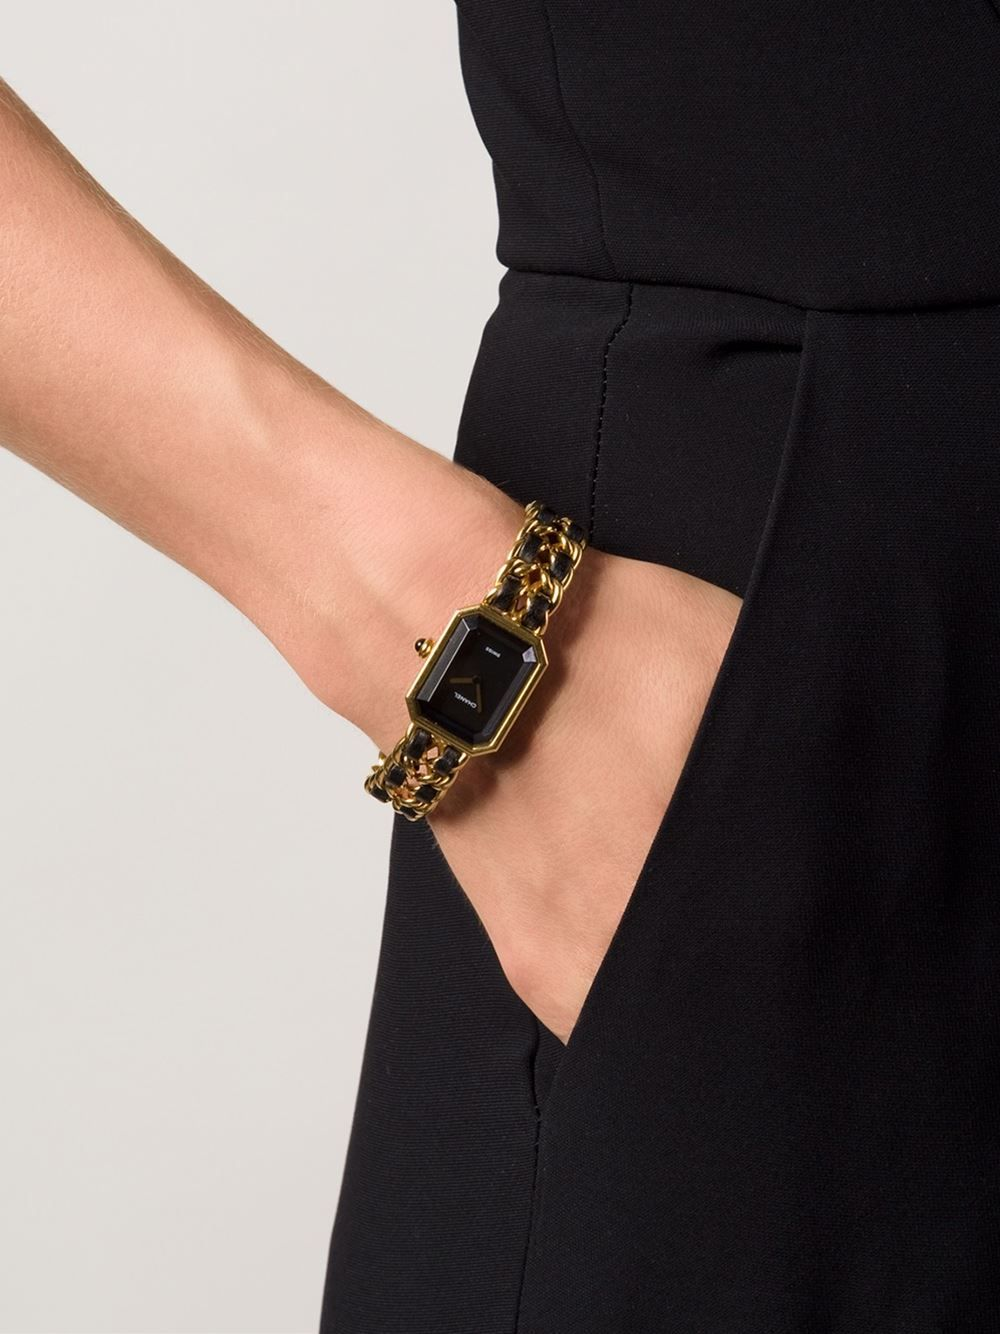 319e5d9be46 Chanel Vintage  premier  Watch - What Goes Around Comes Around - Farfetch .com